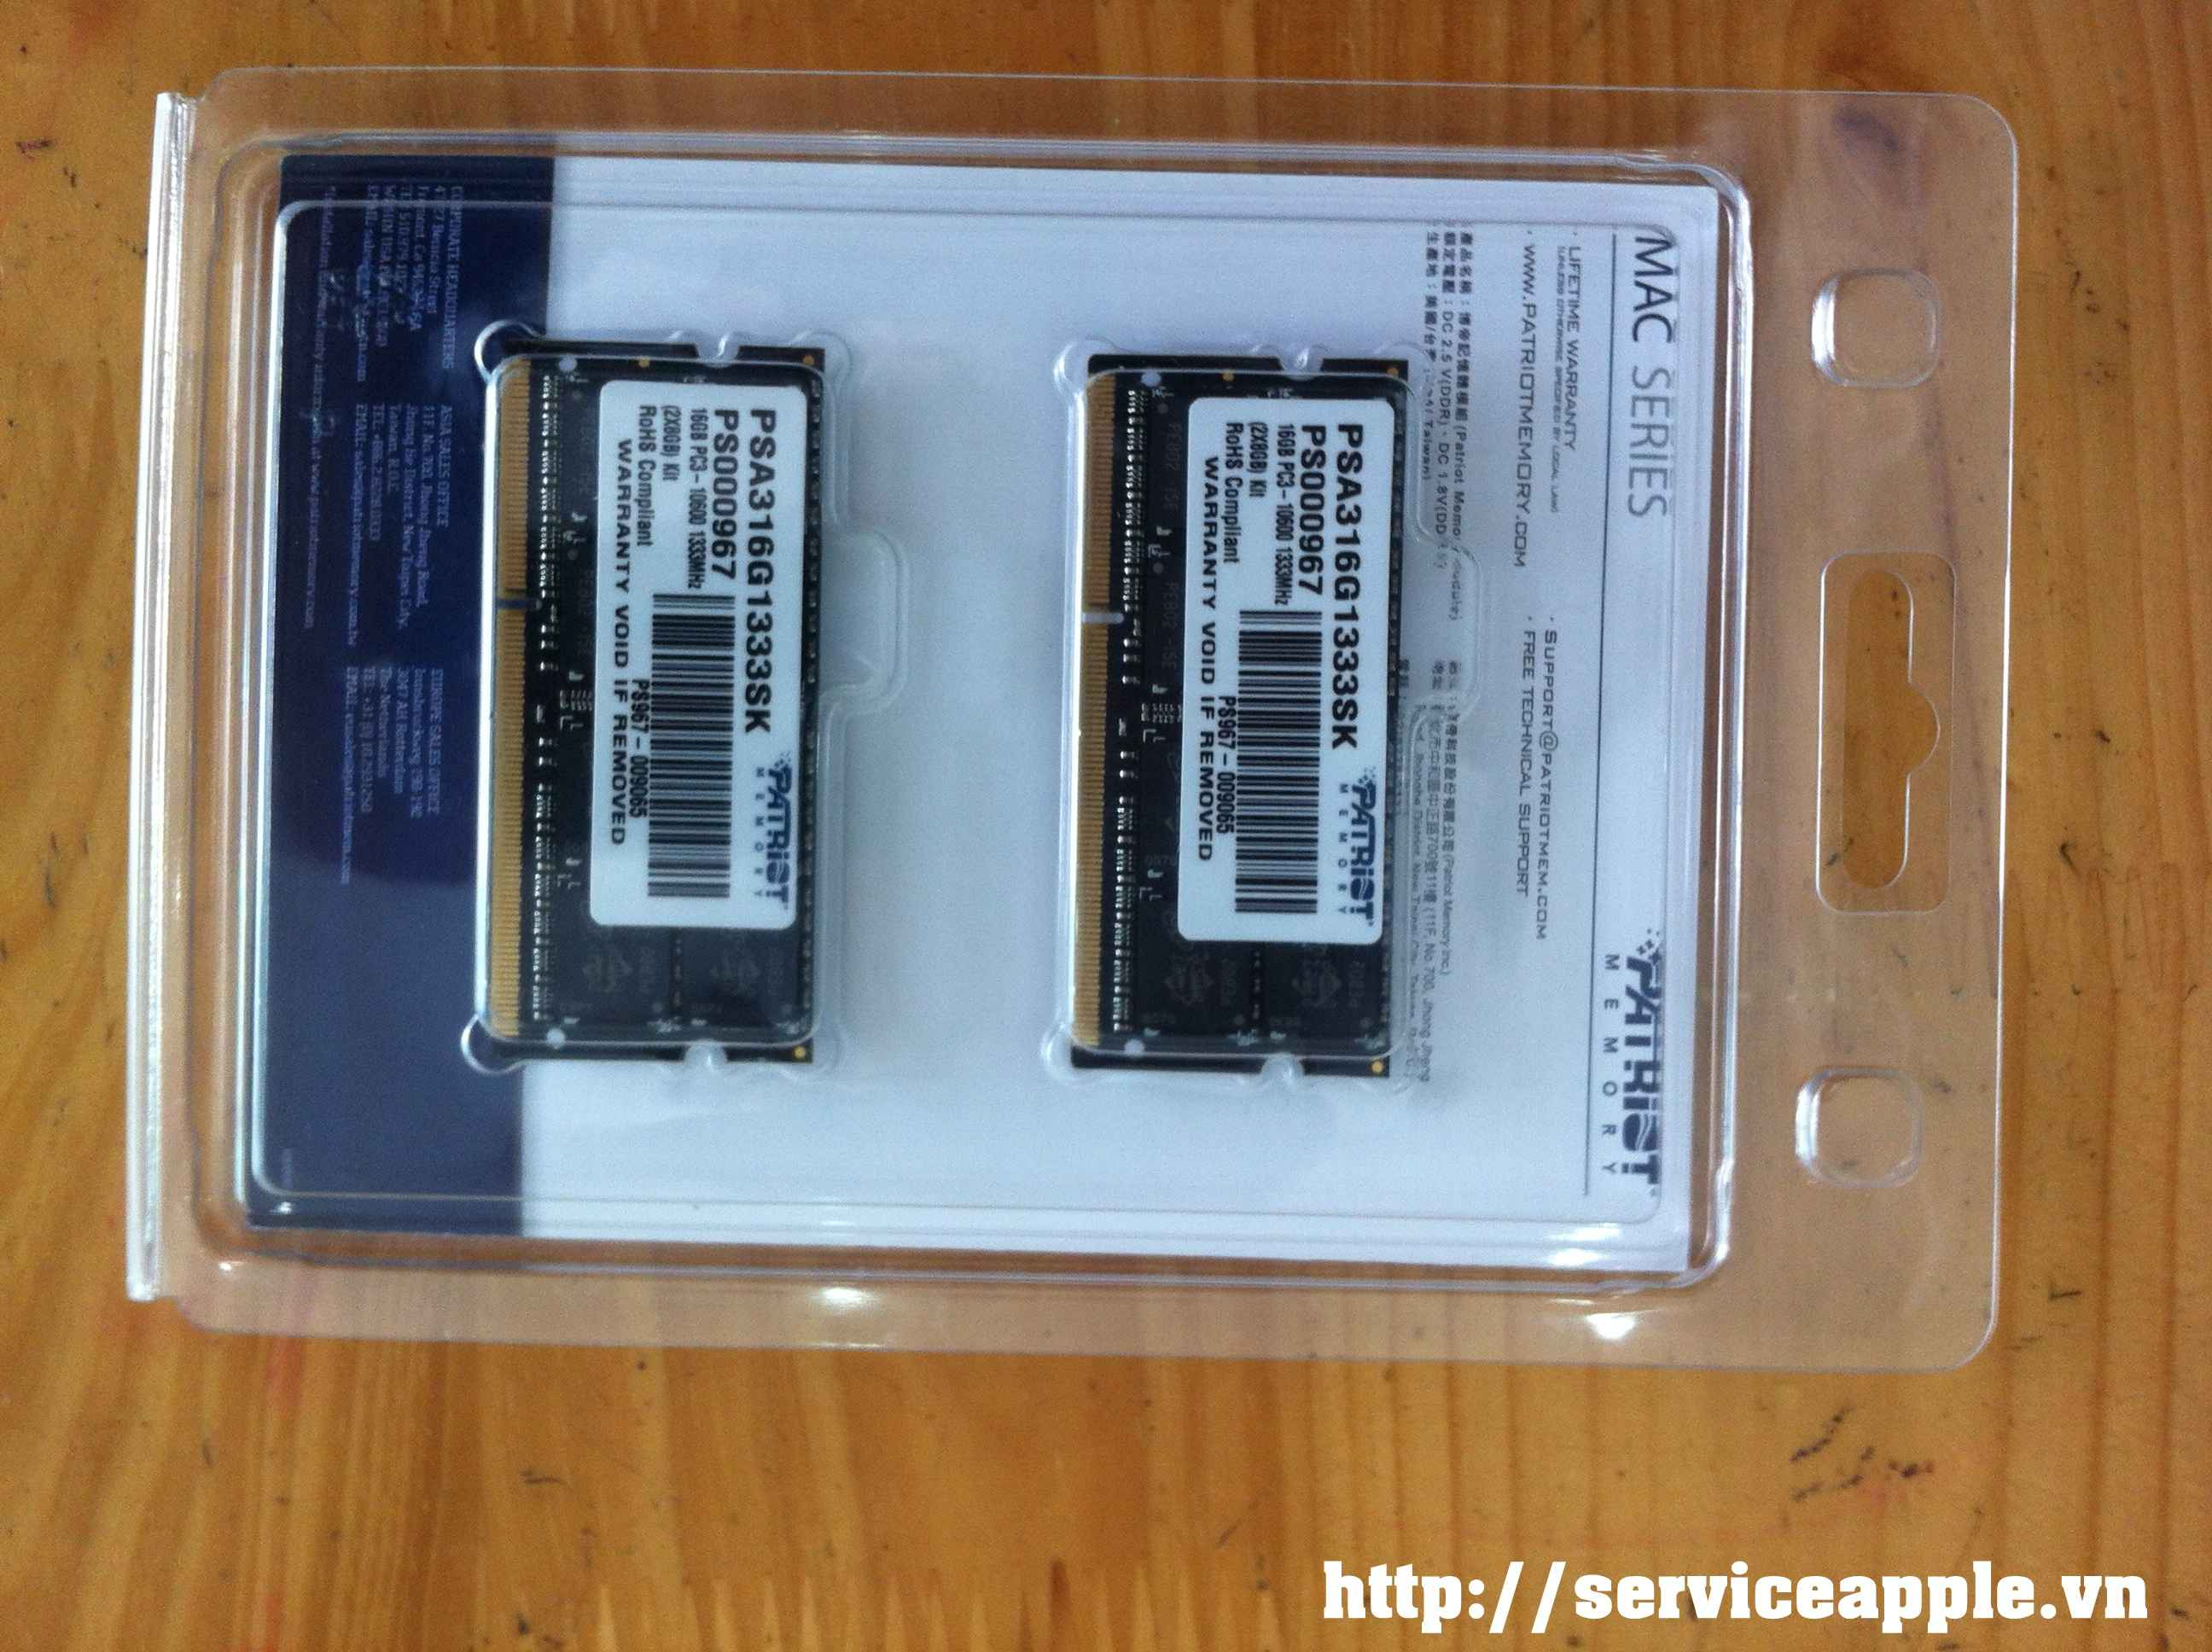 Ram Macbook 16GB Bộ Kiss 8x2   Patriot